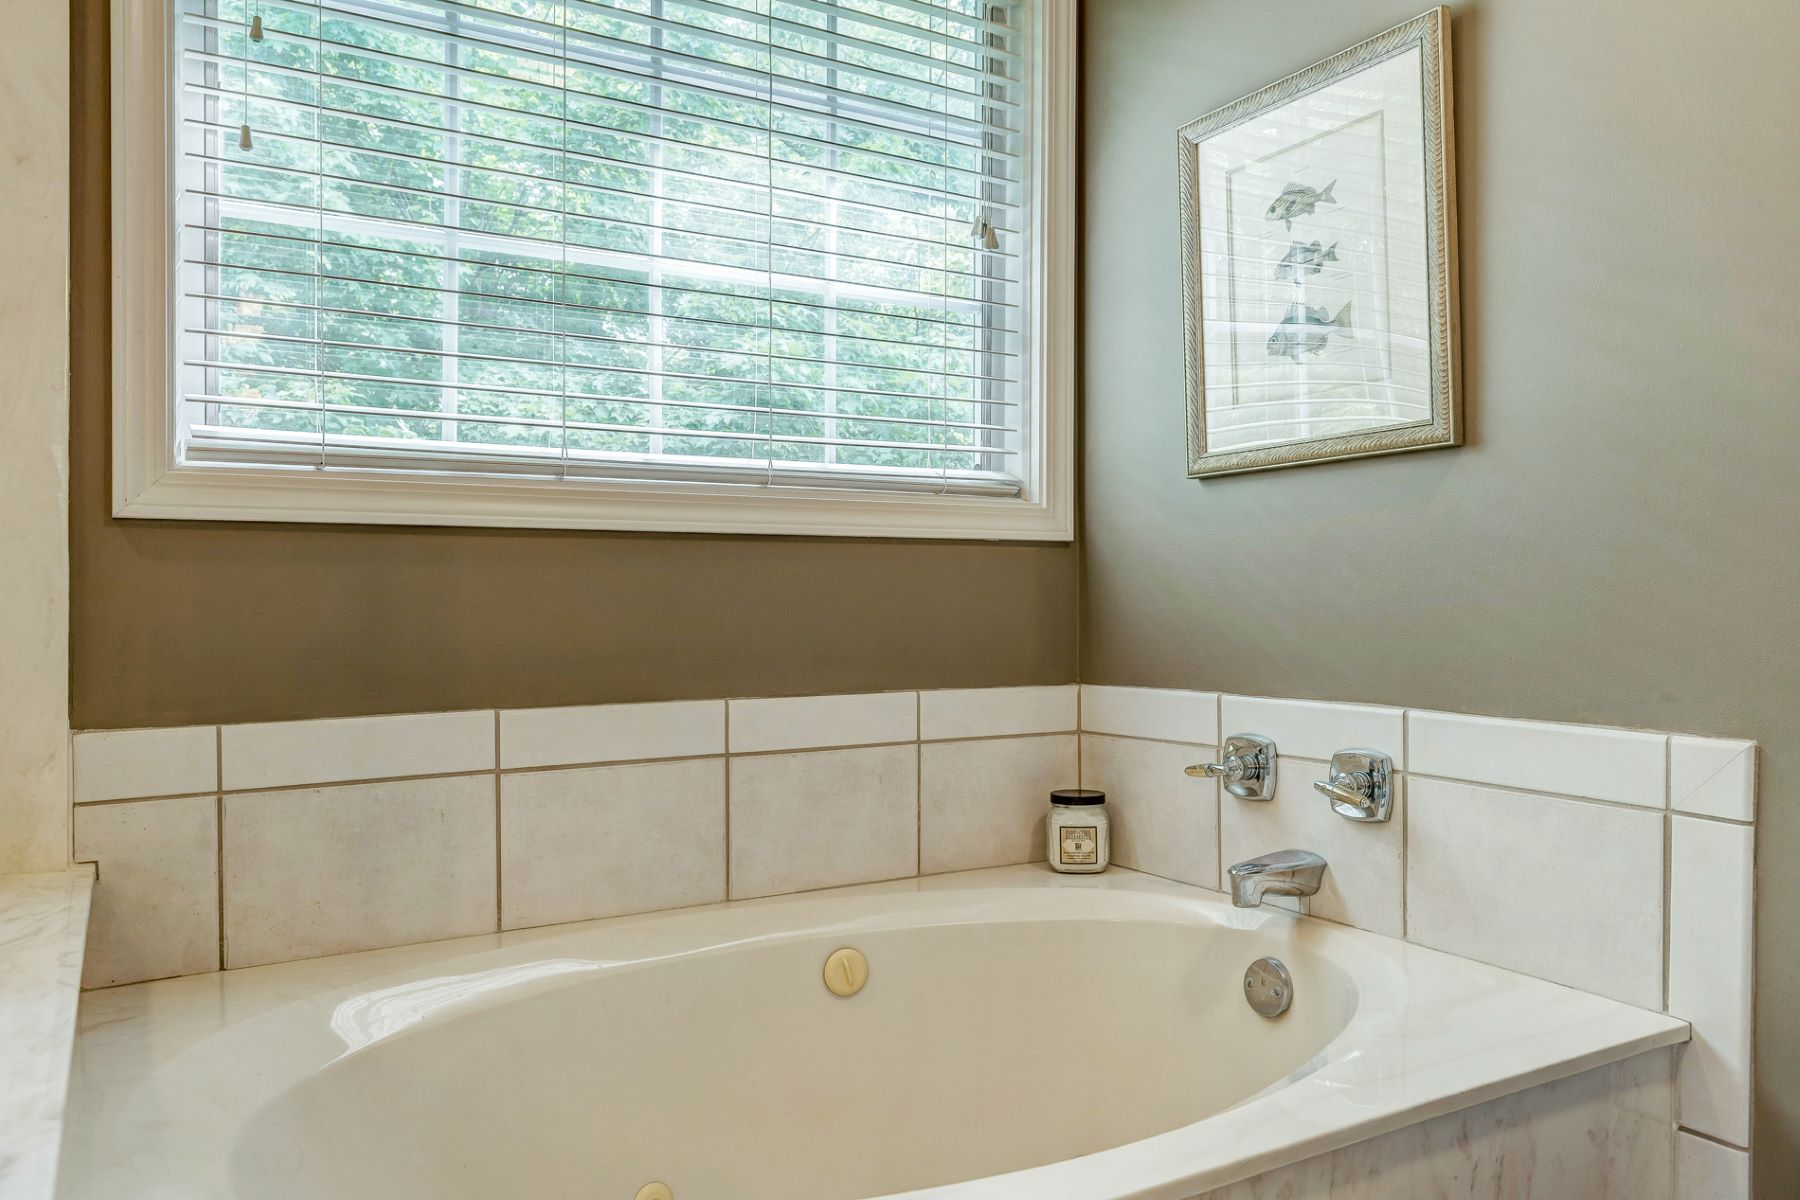 Additional photo for property listing at Woodmoor Ridge Ct 510 Woodmoor Ridge Ct Wildwood, Missouri 63011 United States